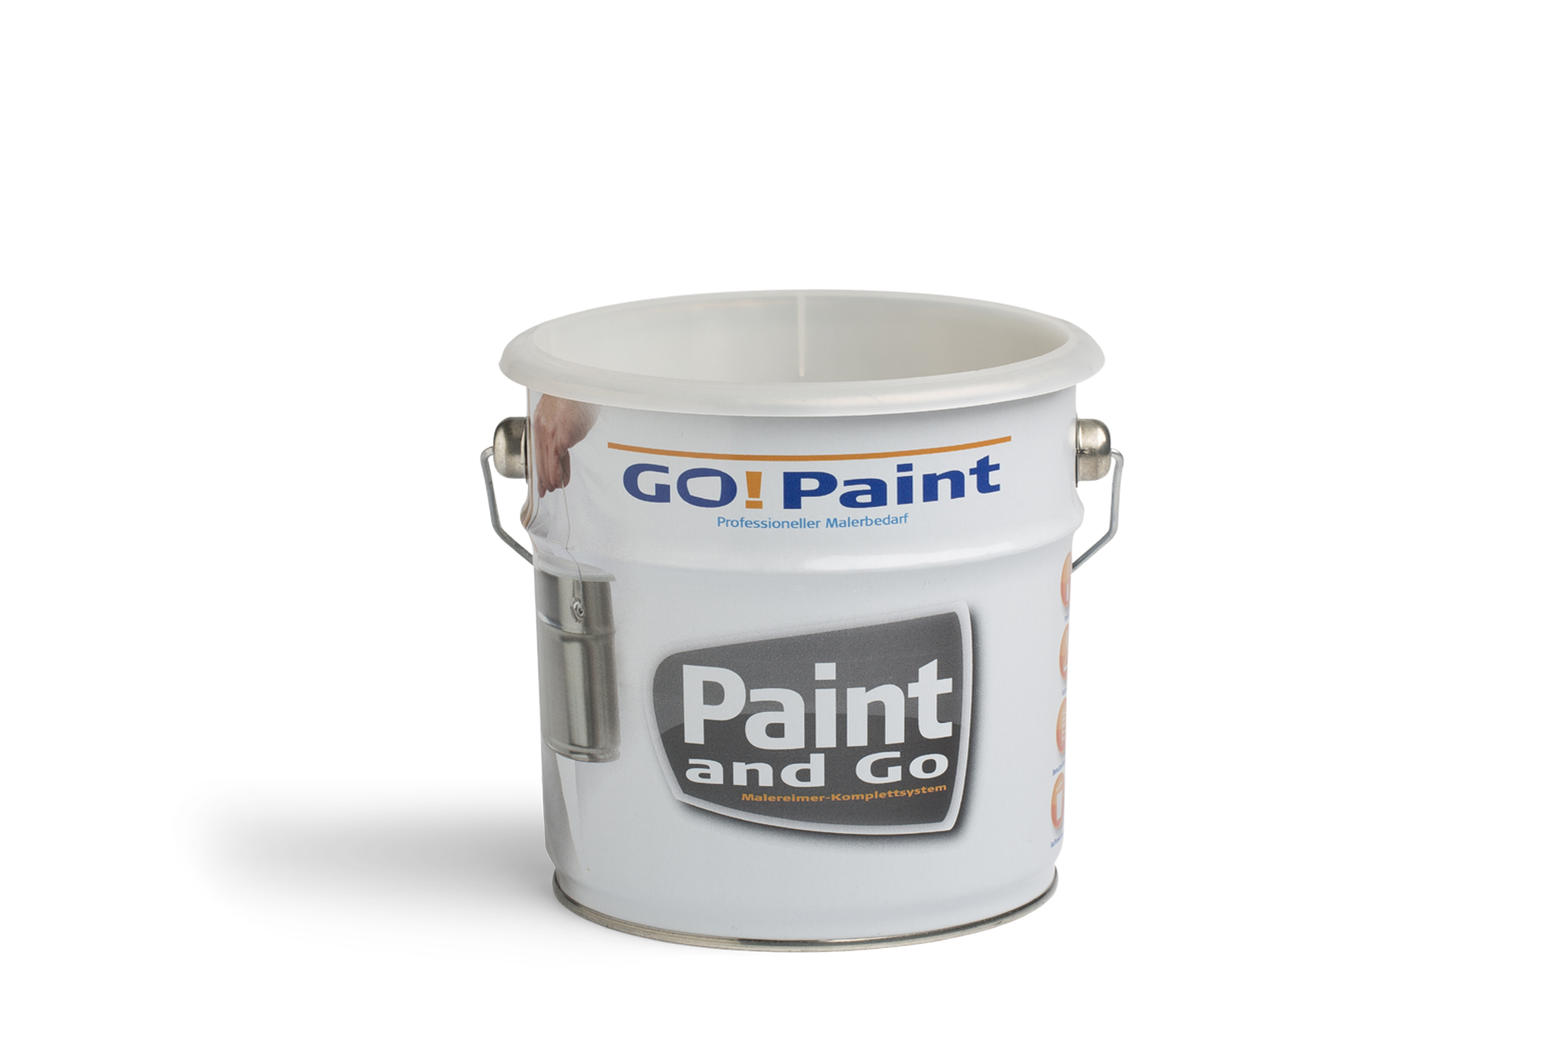 The Paint and Go is a paint kettle containing a plastic insert.